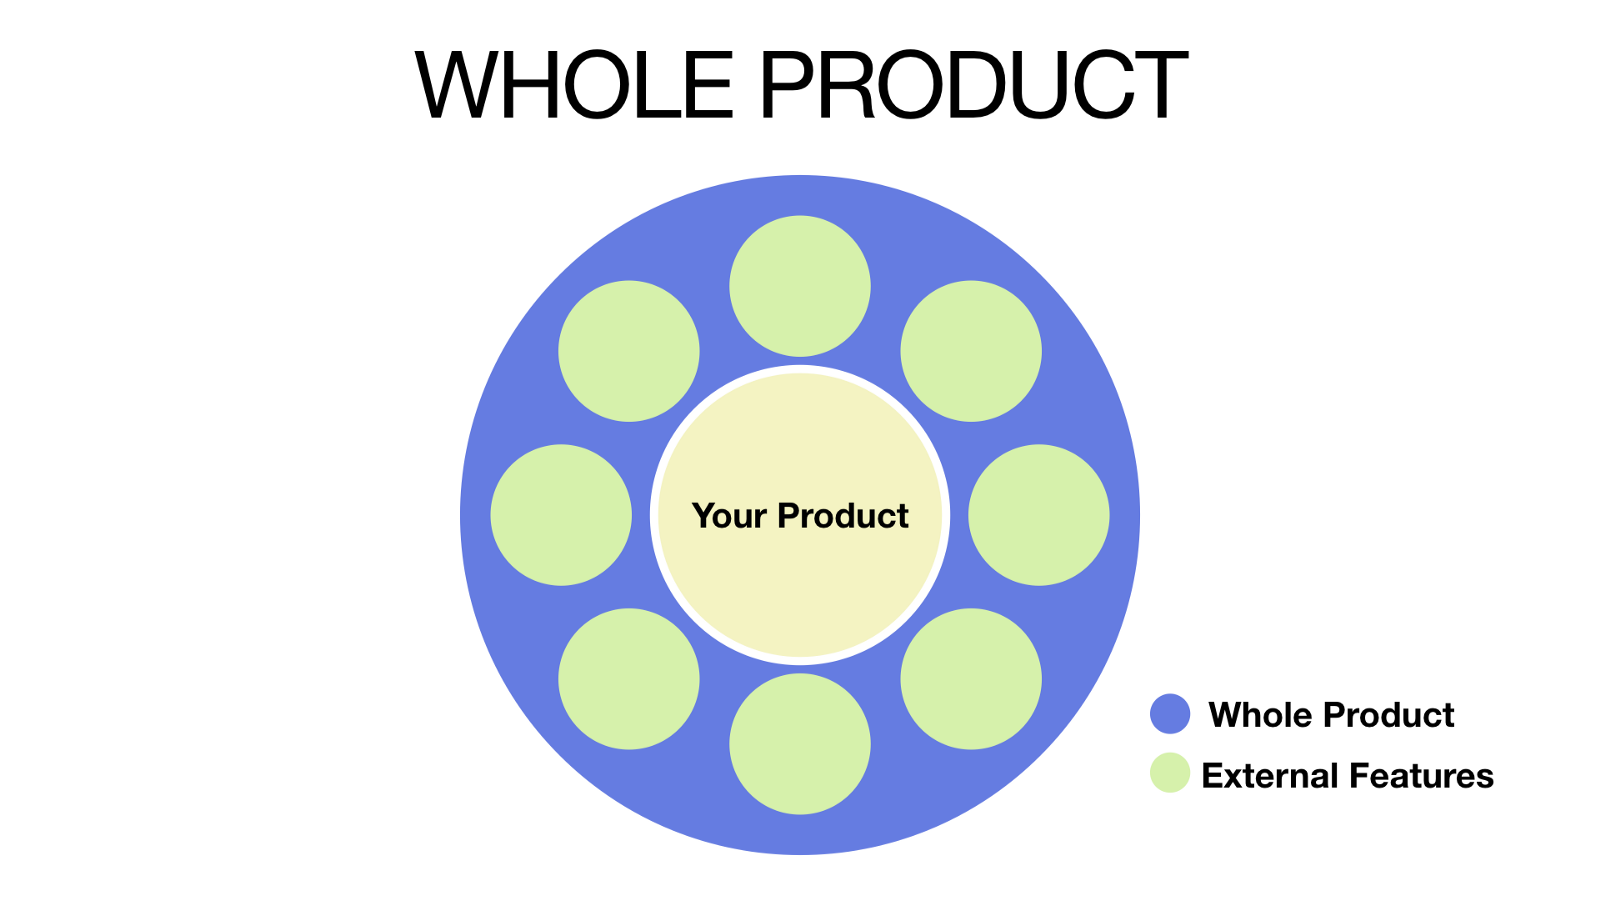 Whole Product diagram